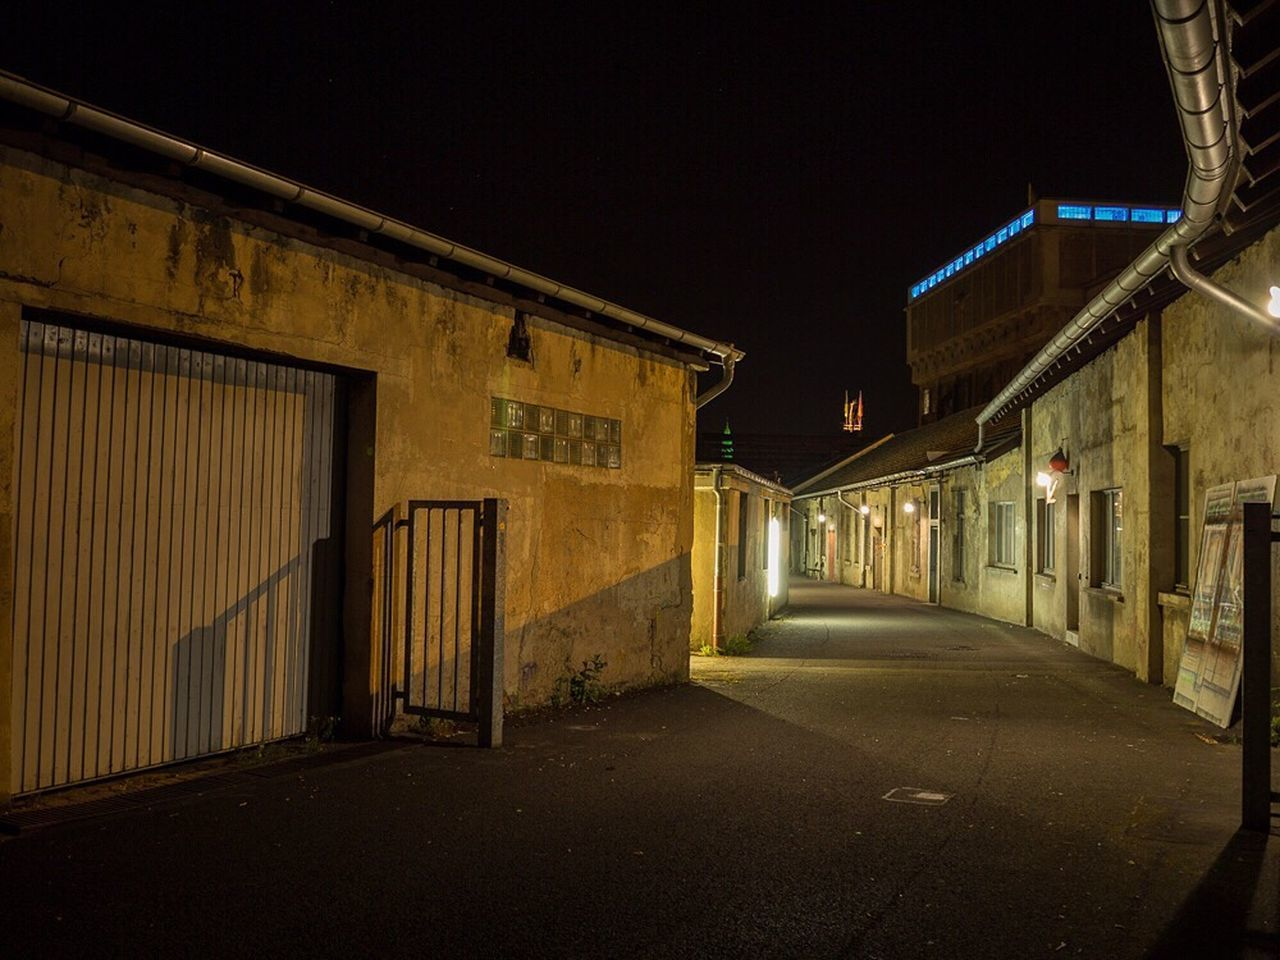 Architecture Built Structure Building Exterior Empty The Way Forward Road Night Illuminated Sky History Outdoors Historic Façade No People Long Footpath